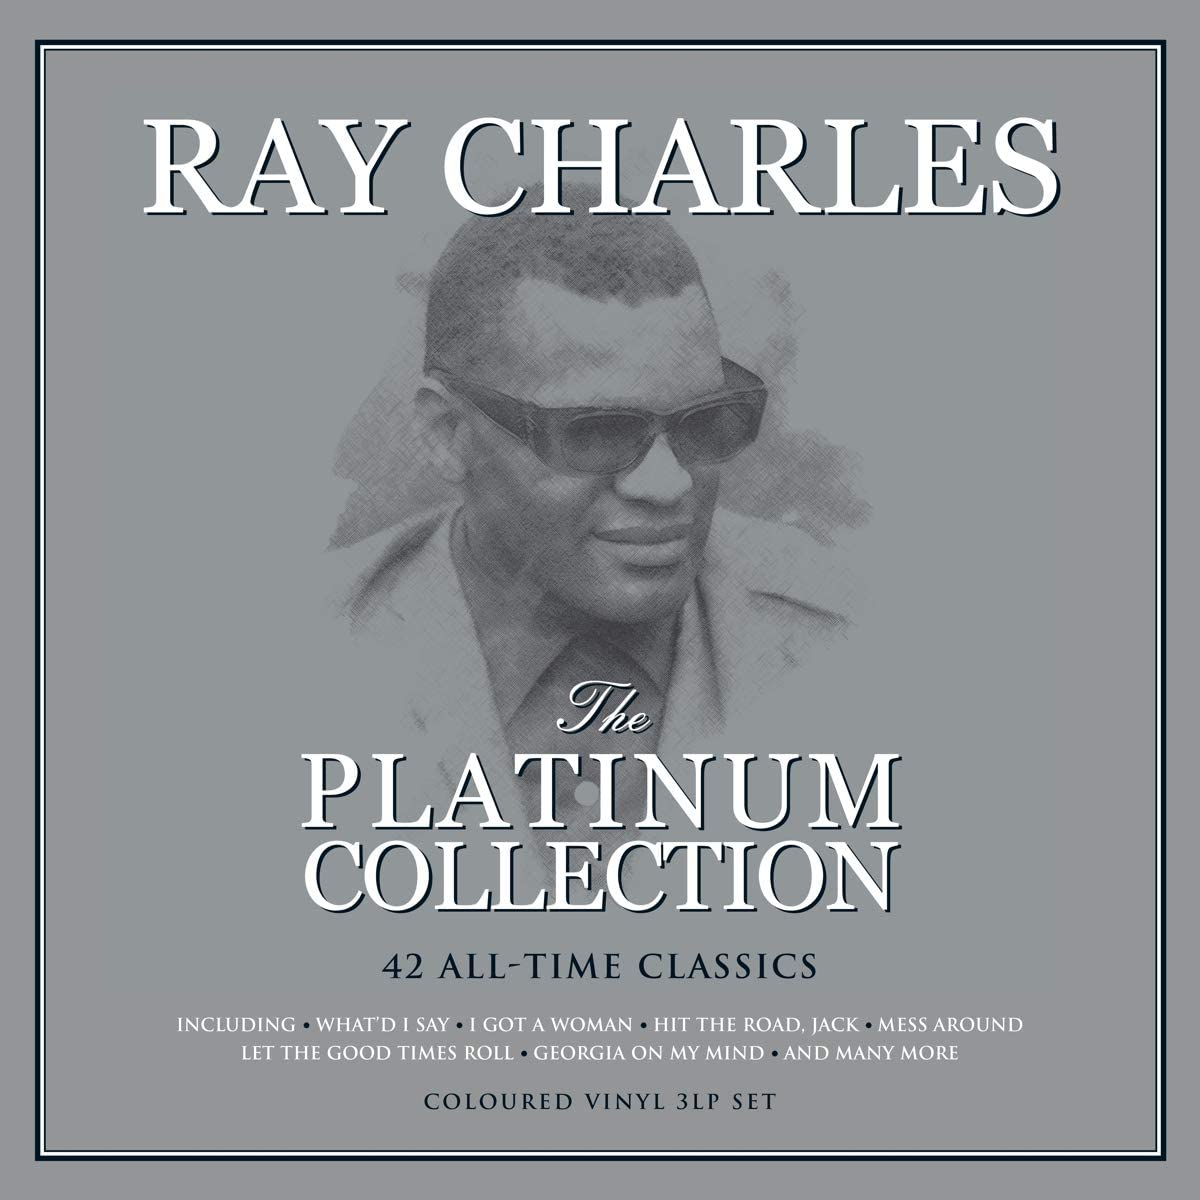 Charles, Ray The Platinum Collection Vinyl